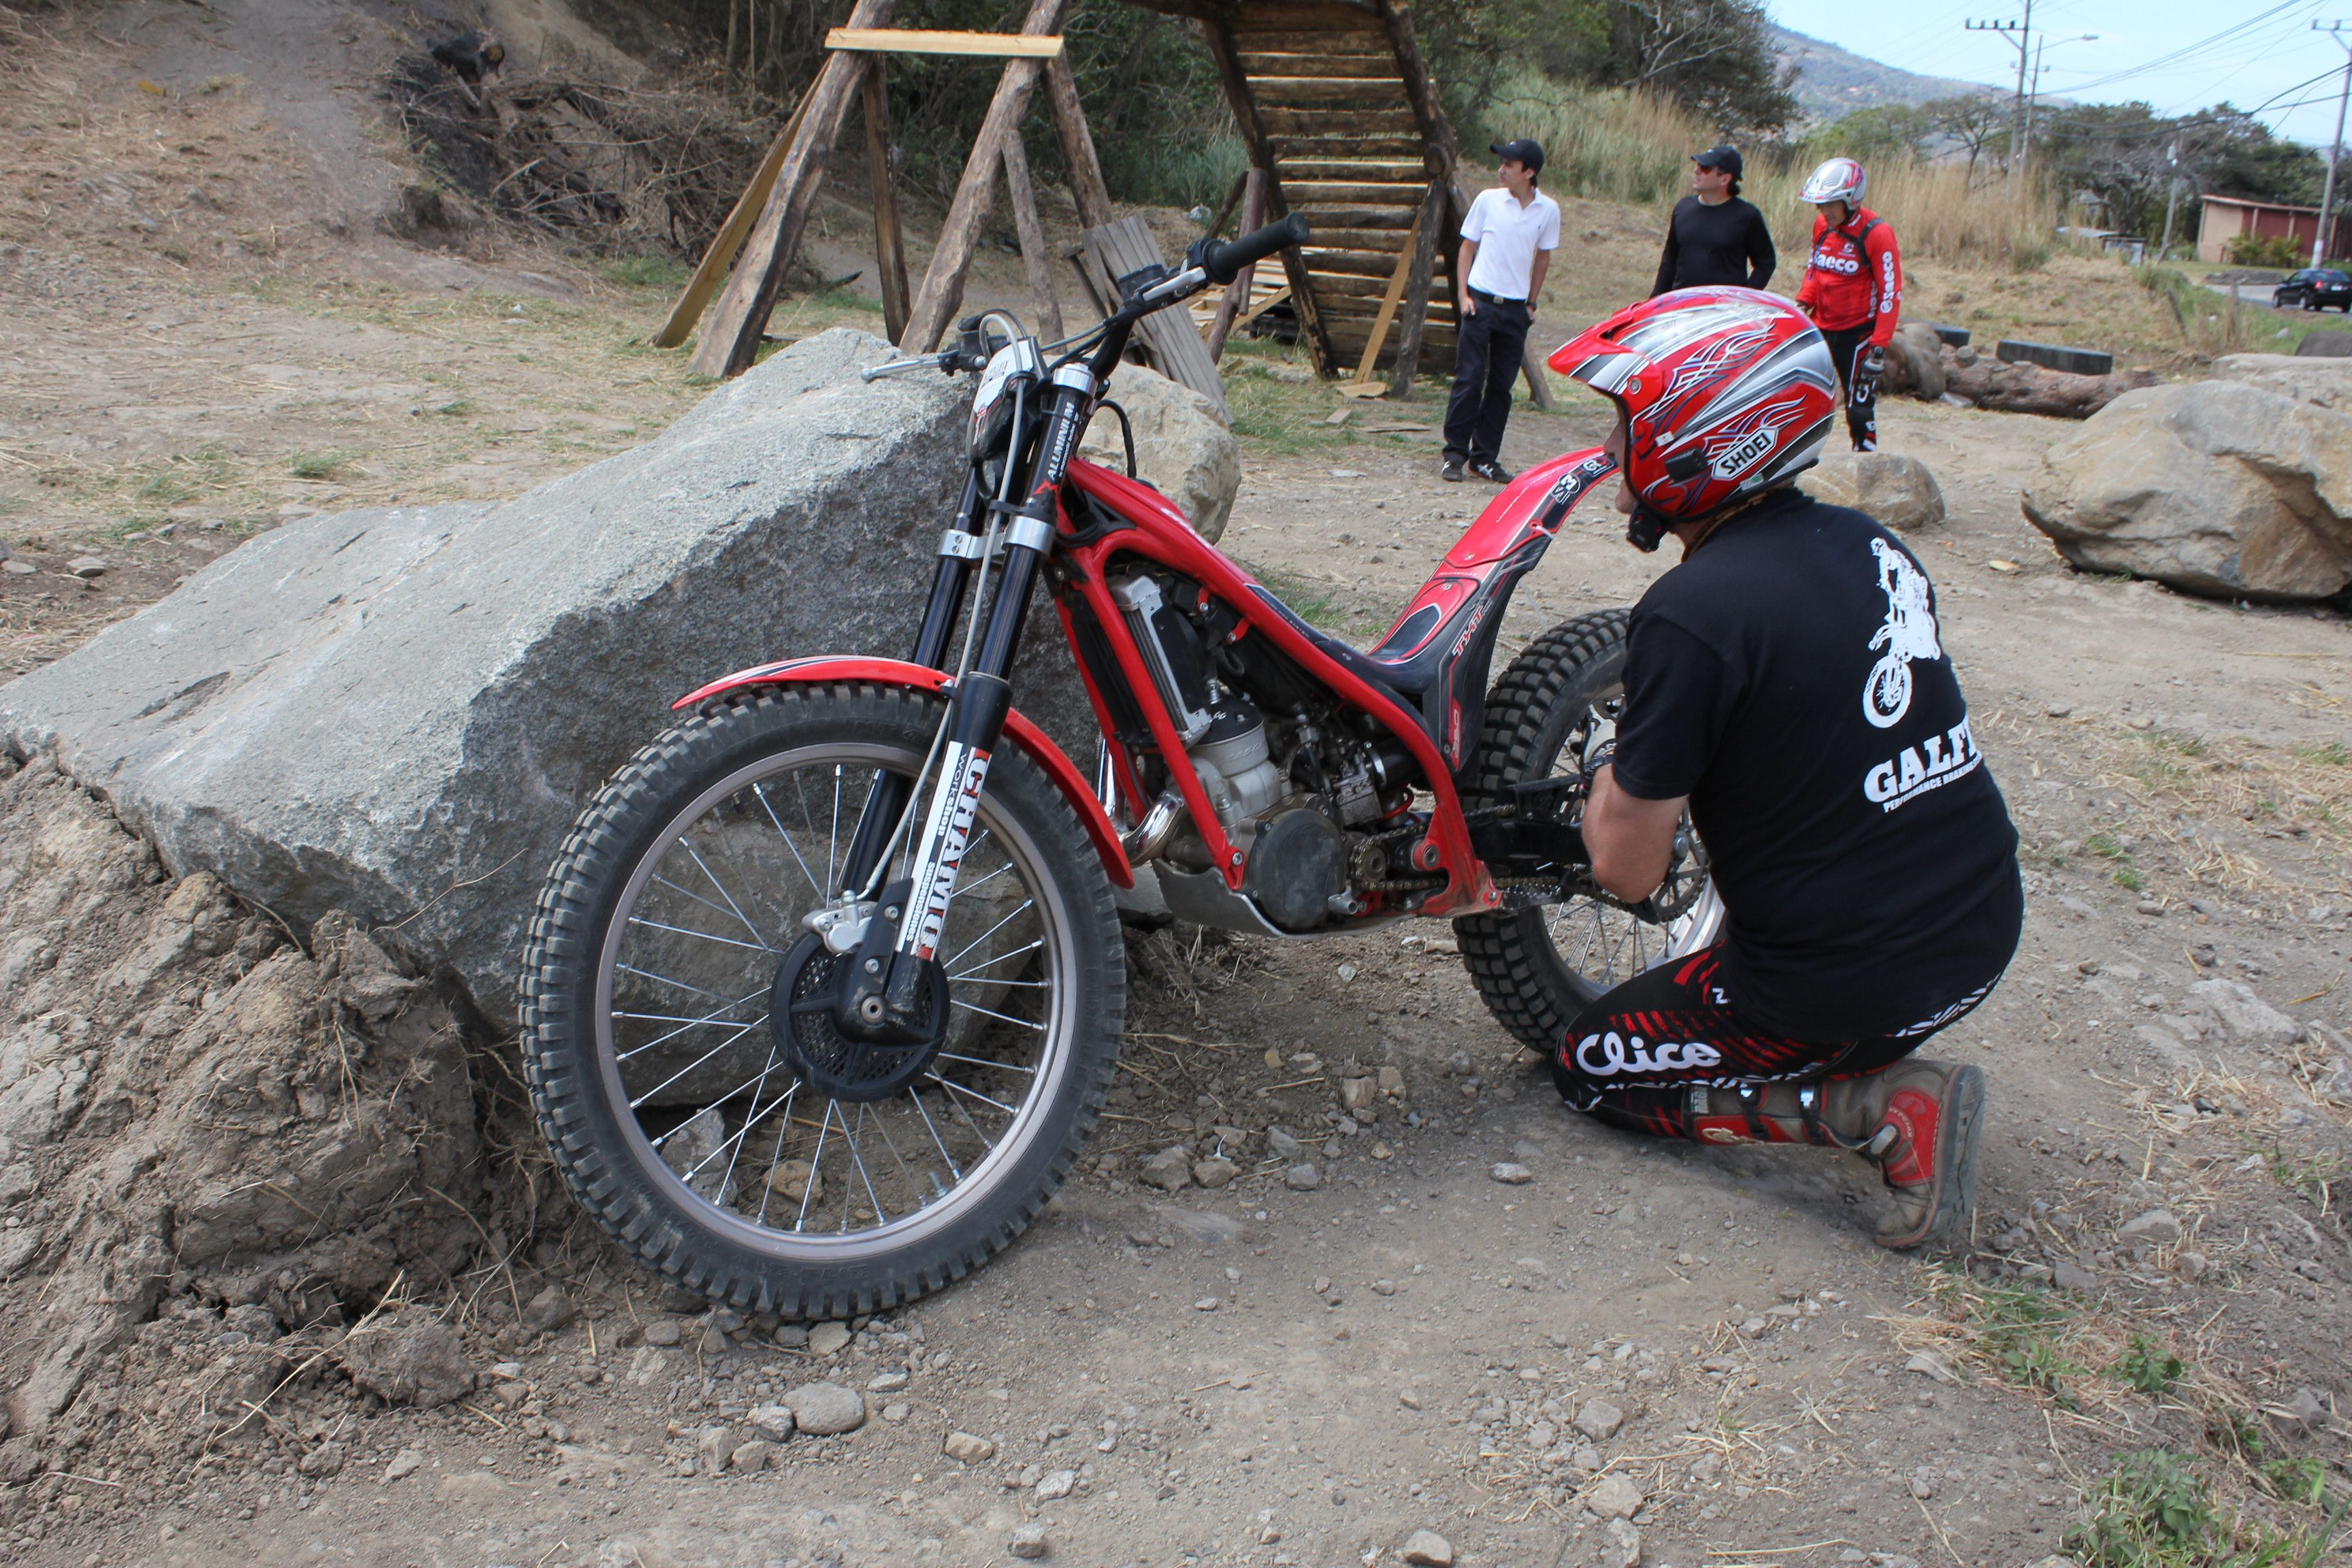 Fixing the motorbike before a trials run